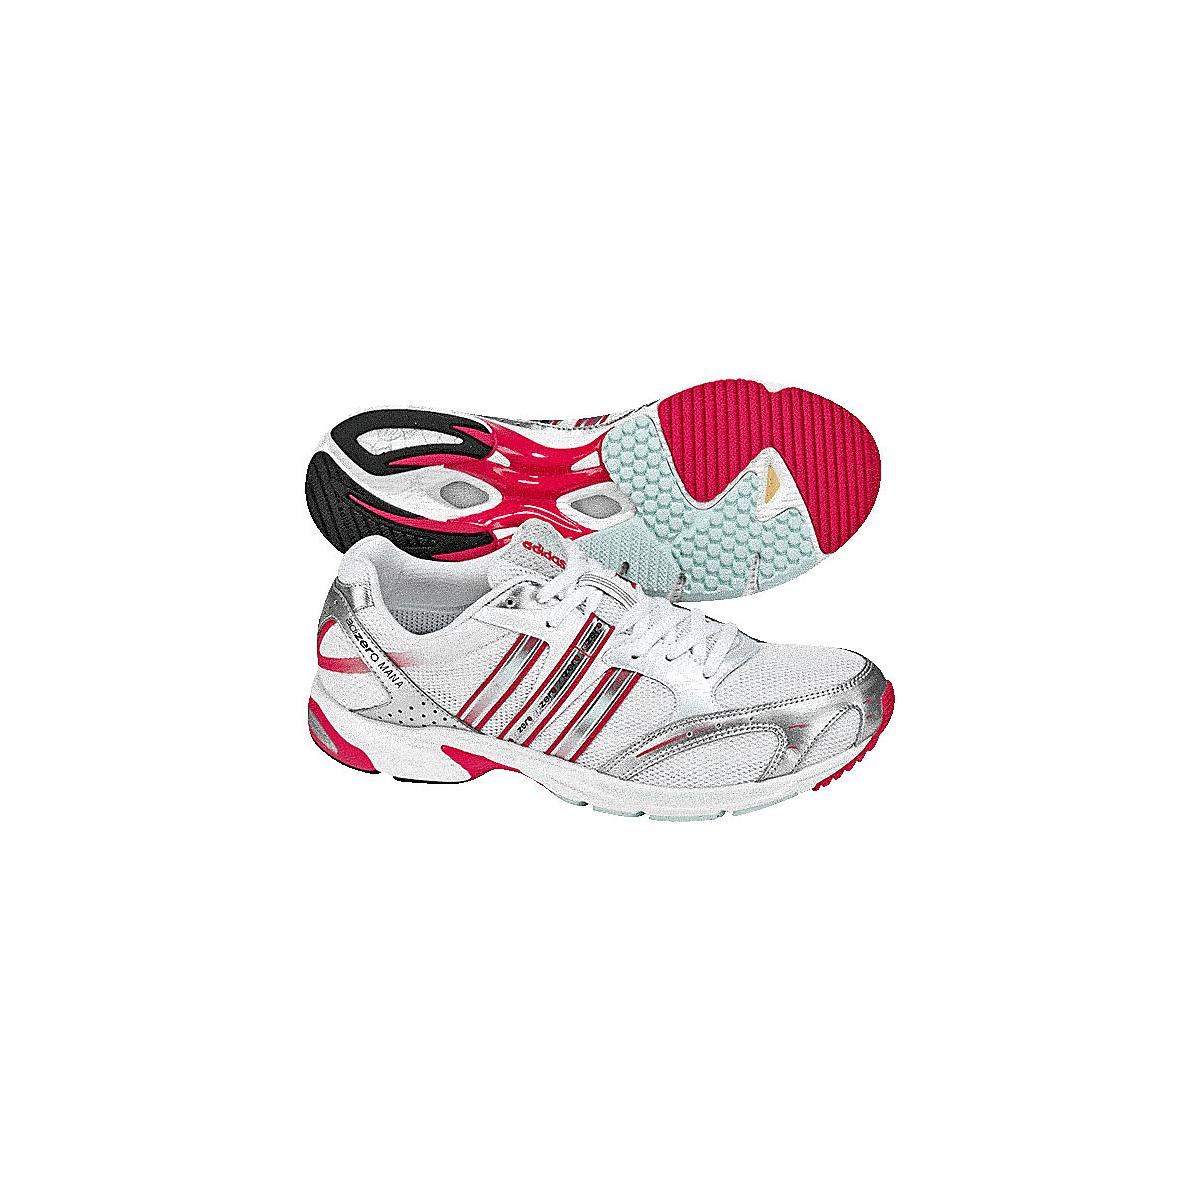 64972af846d64 Womens adidas adizero Mana Running Shoe at Road Runner Sports